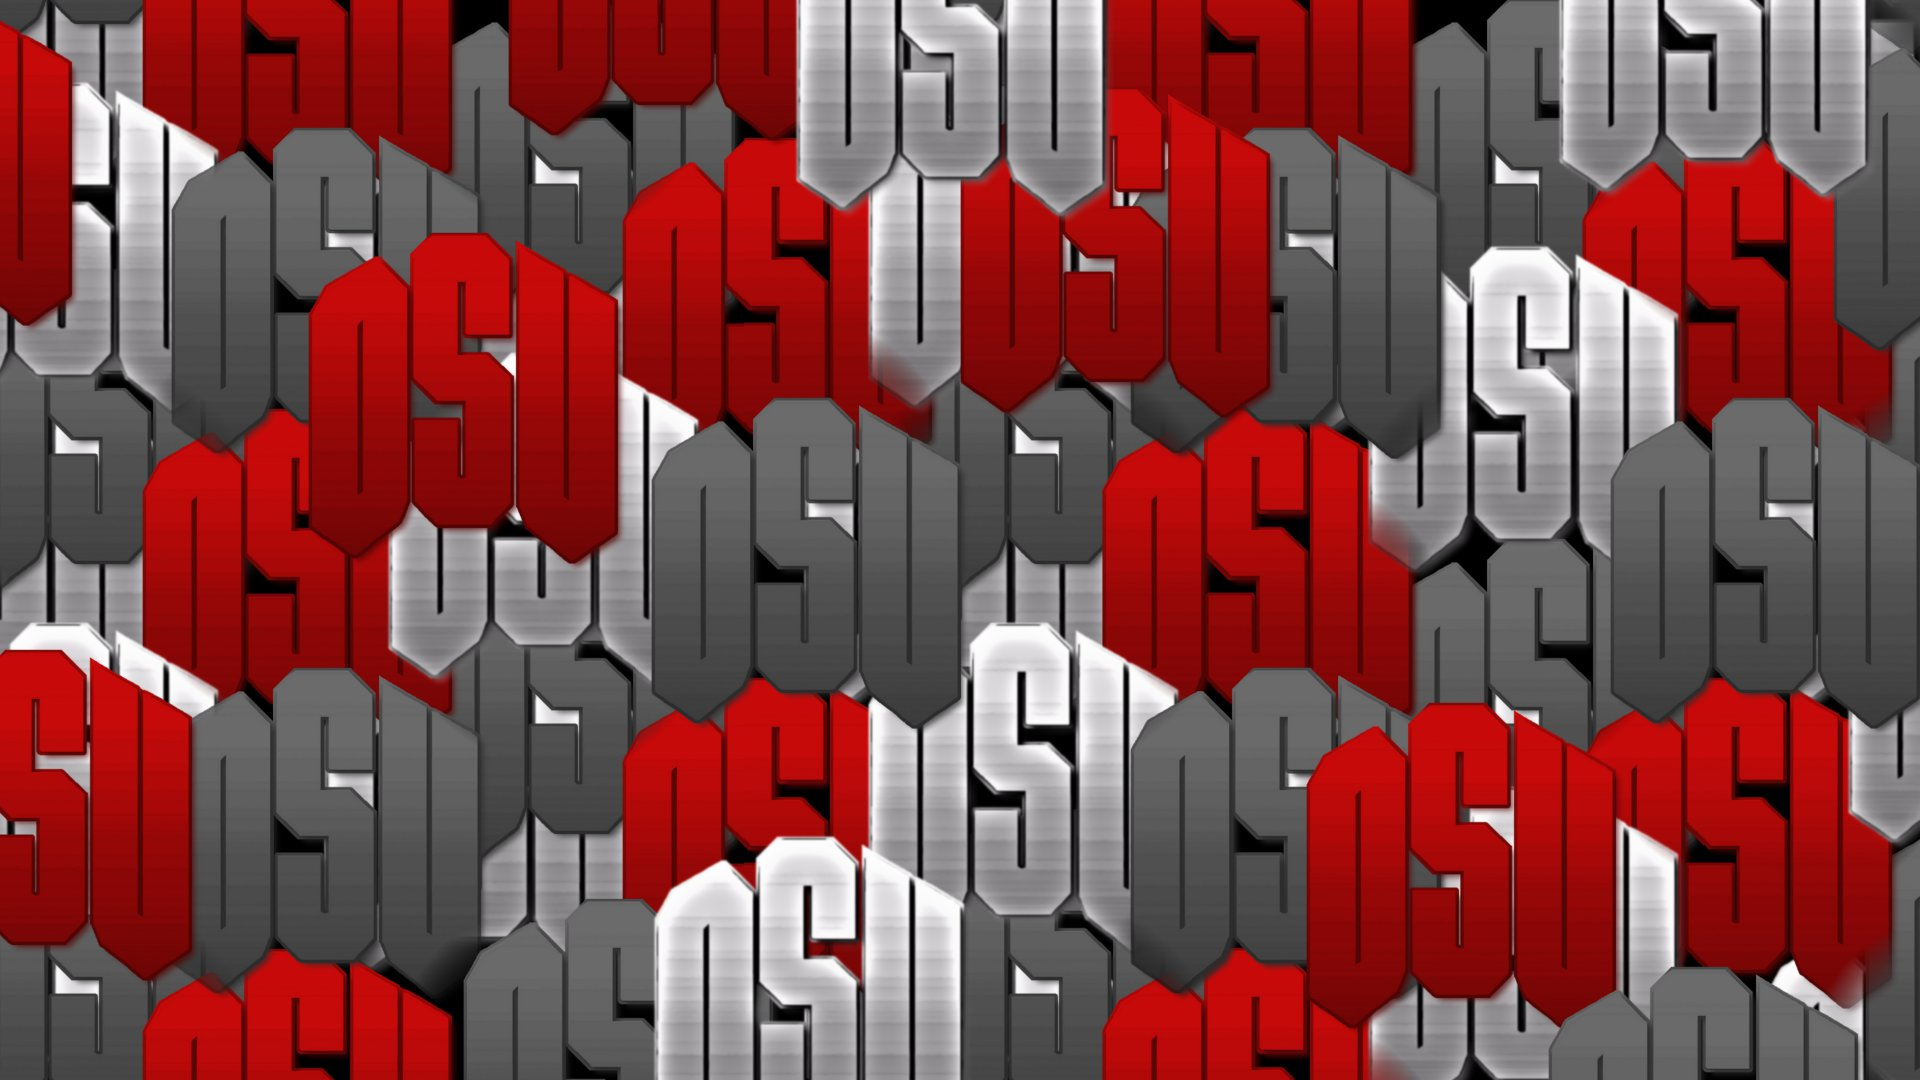 OSU Wallpaper 427   Ohio State Football Wallpaper 30620371 1920x1080